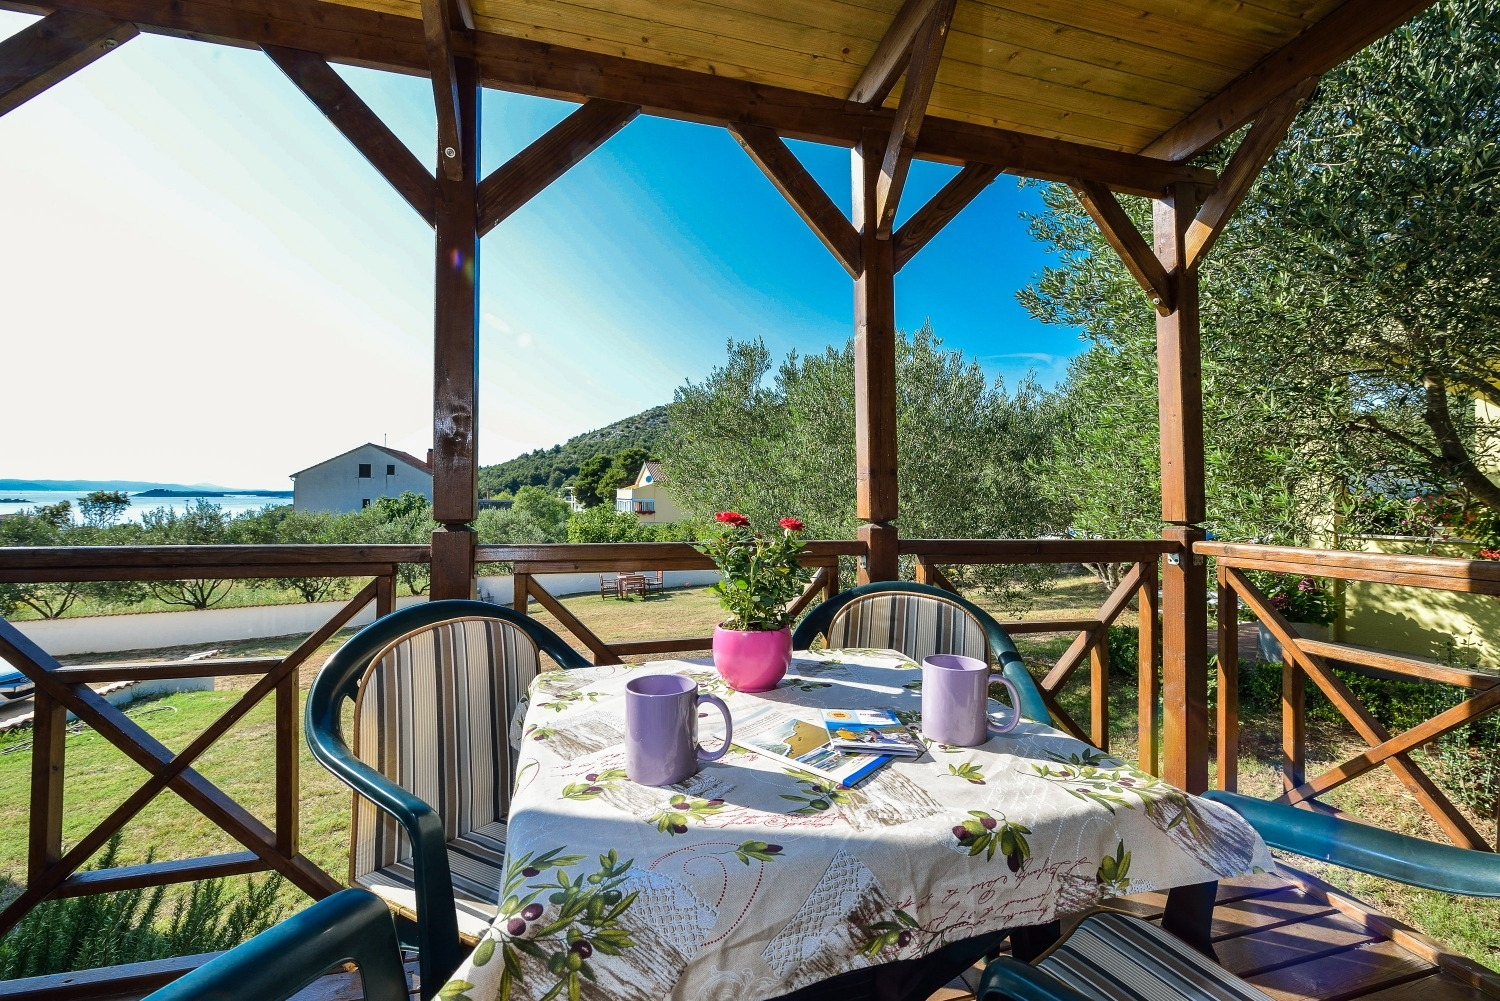 Holiday Homes, Drage, Pakoštane and surroundings - Holiday houses, villas  Iva